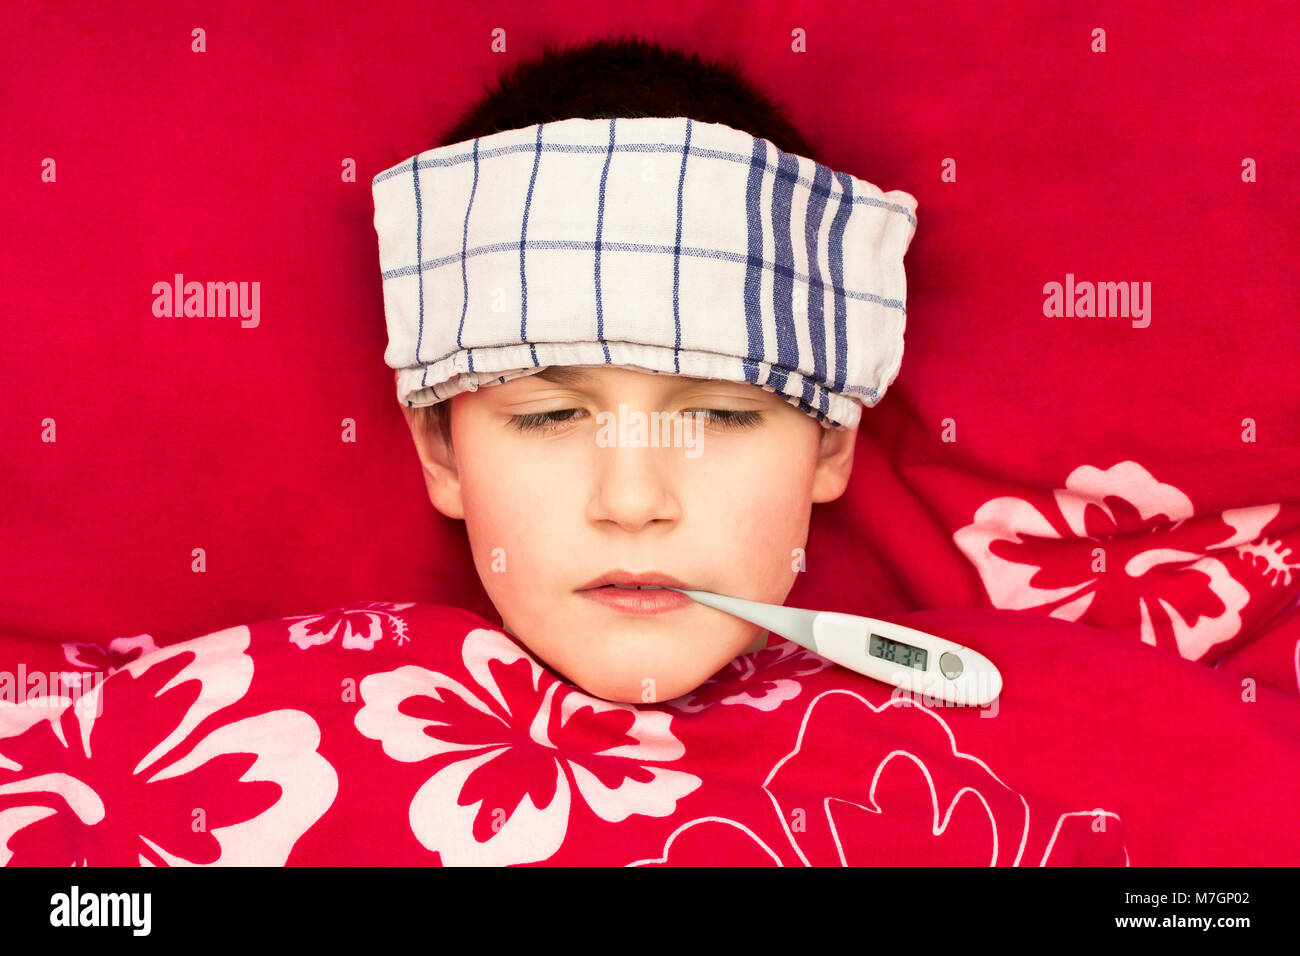 A sick boy lying in bed with a thermometer in his mouth. Cold compress on the forehead of a child. Influenza epidemic - Stock Image